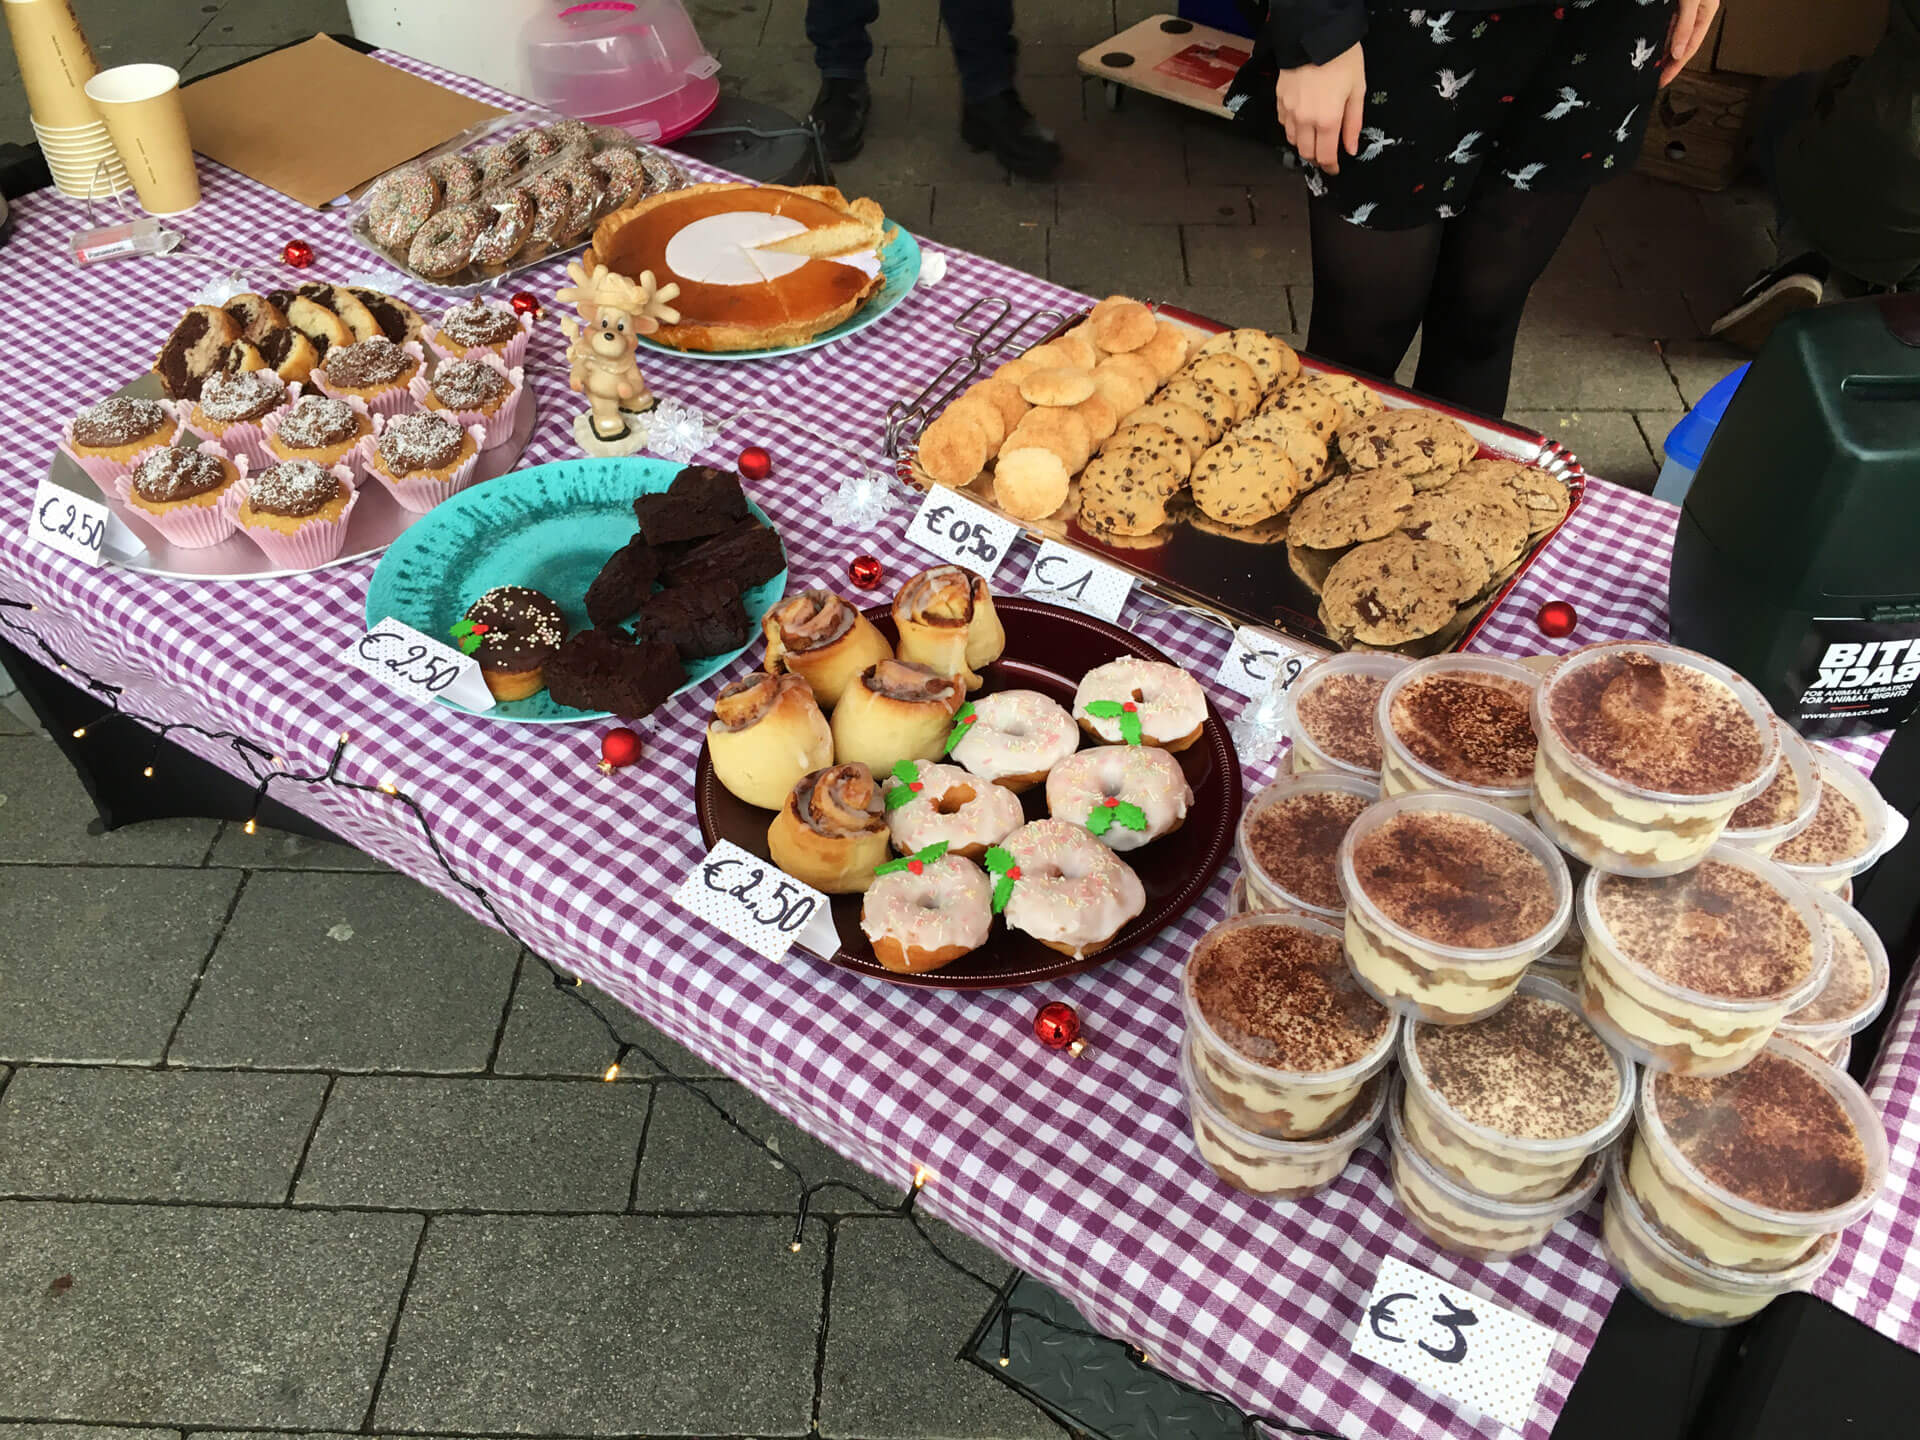 Winter bake sale Hasselt